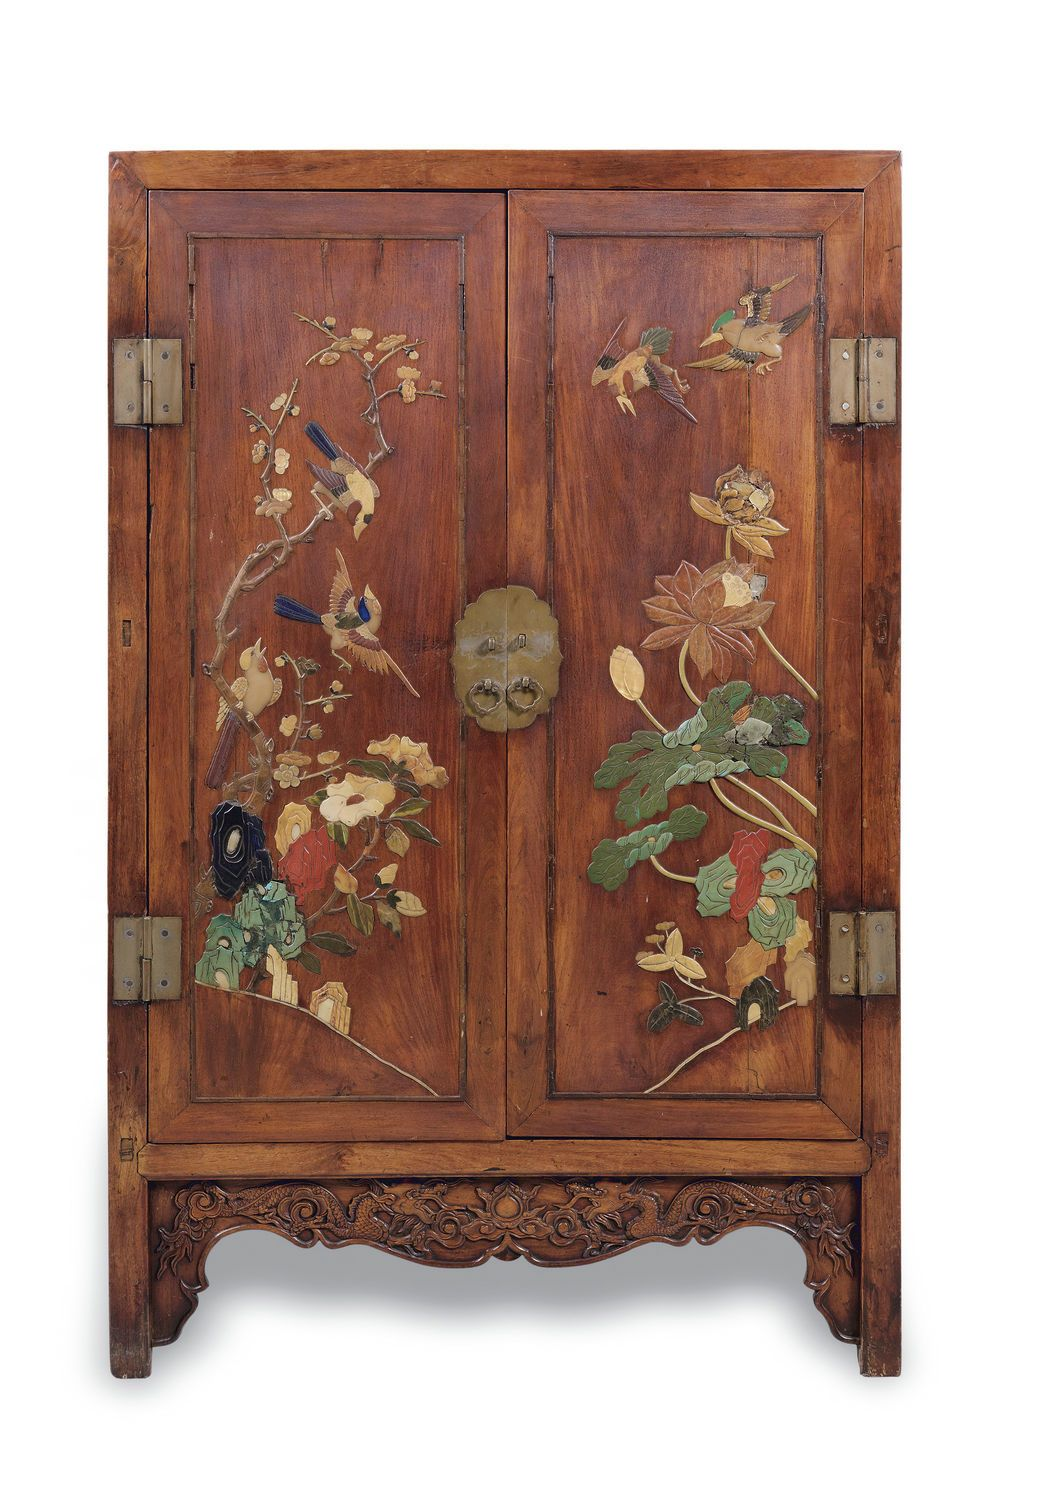 An embellished huanghuali uflowers and birdsu squarecorner cabinet